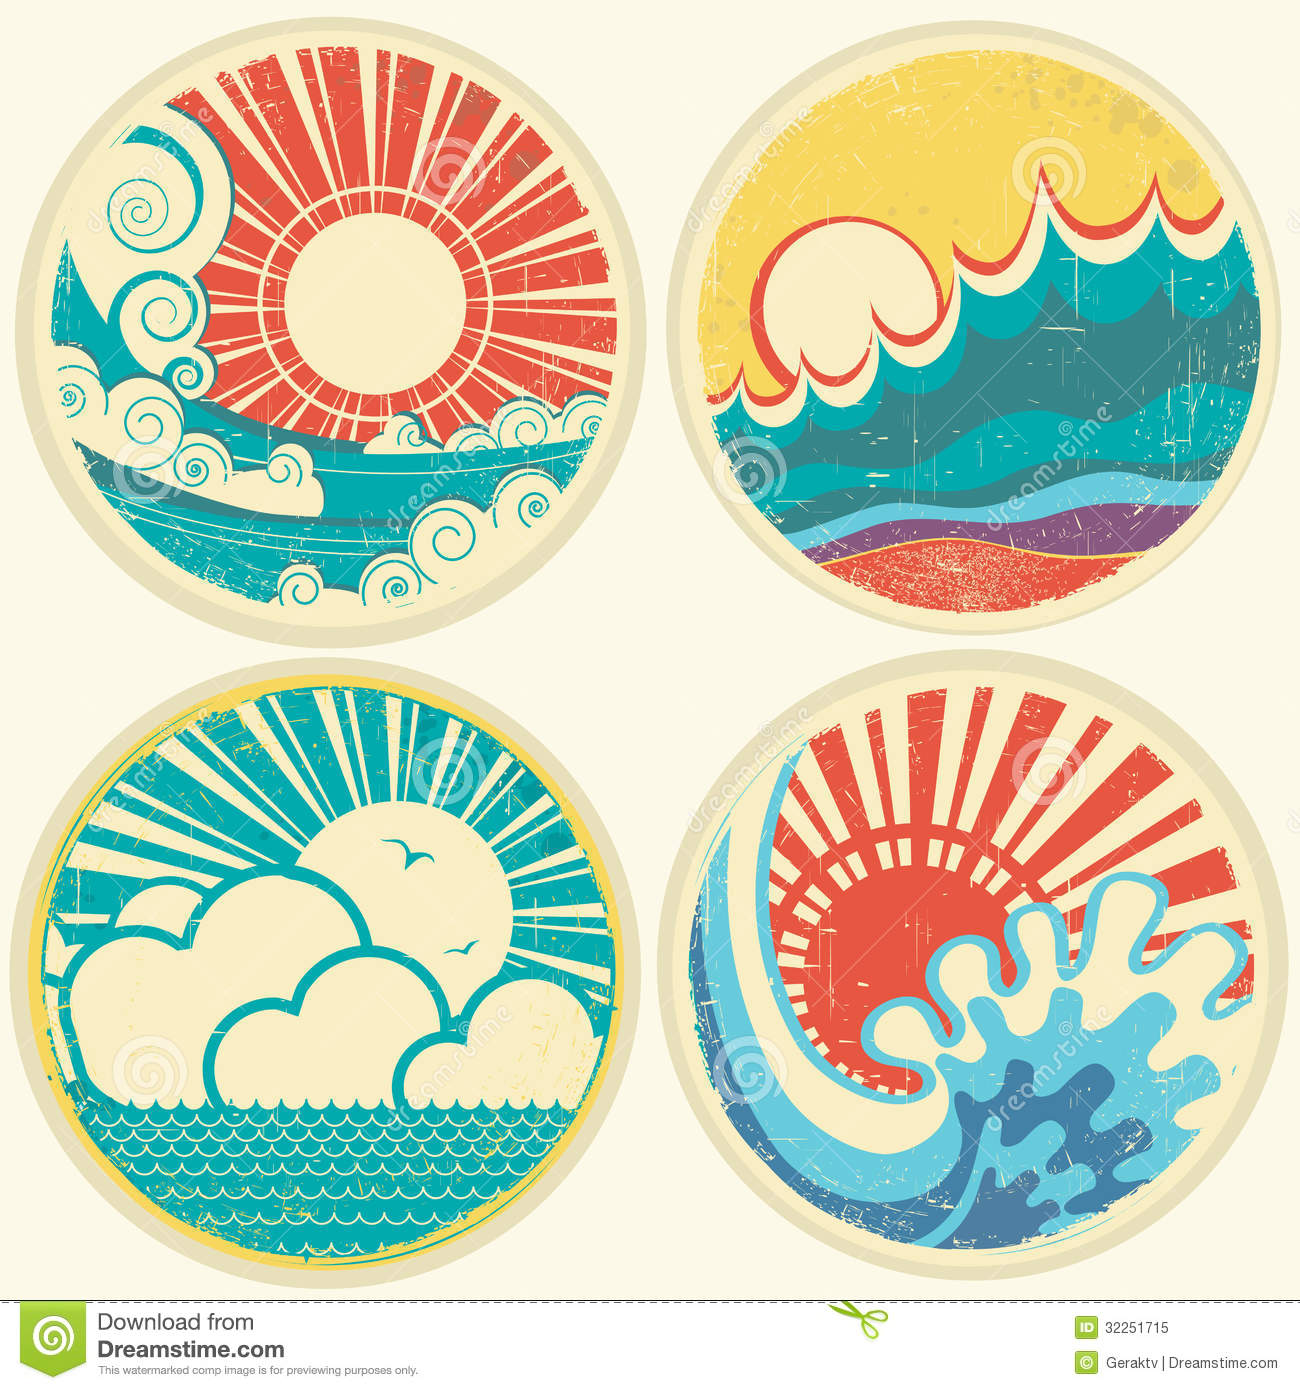 Retro Beach Illustration Royalty Free Stock Photo: Vintage Sun And Sea Waves. Vector Icons Of Illust Royalty